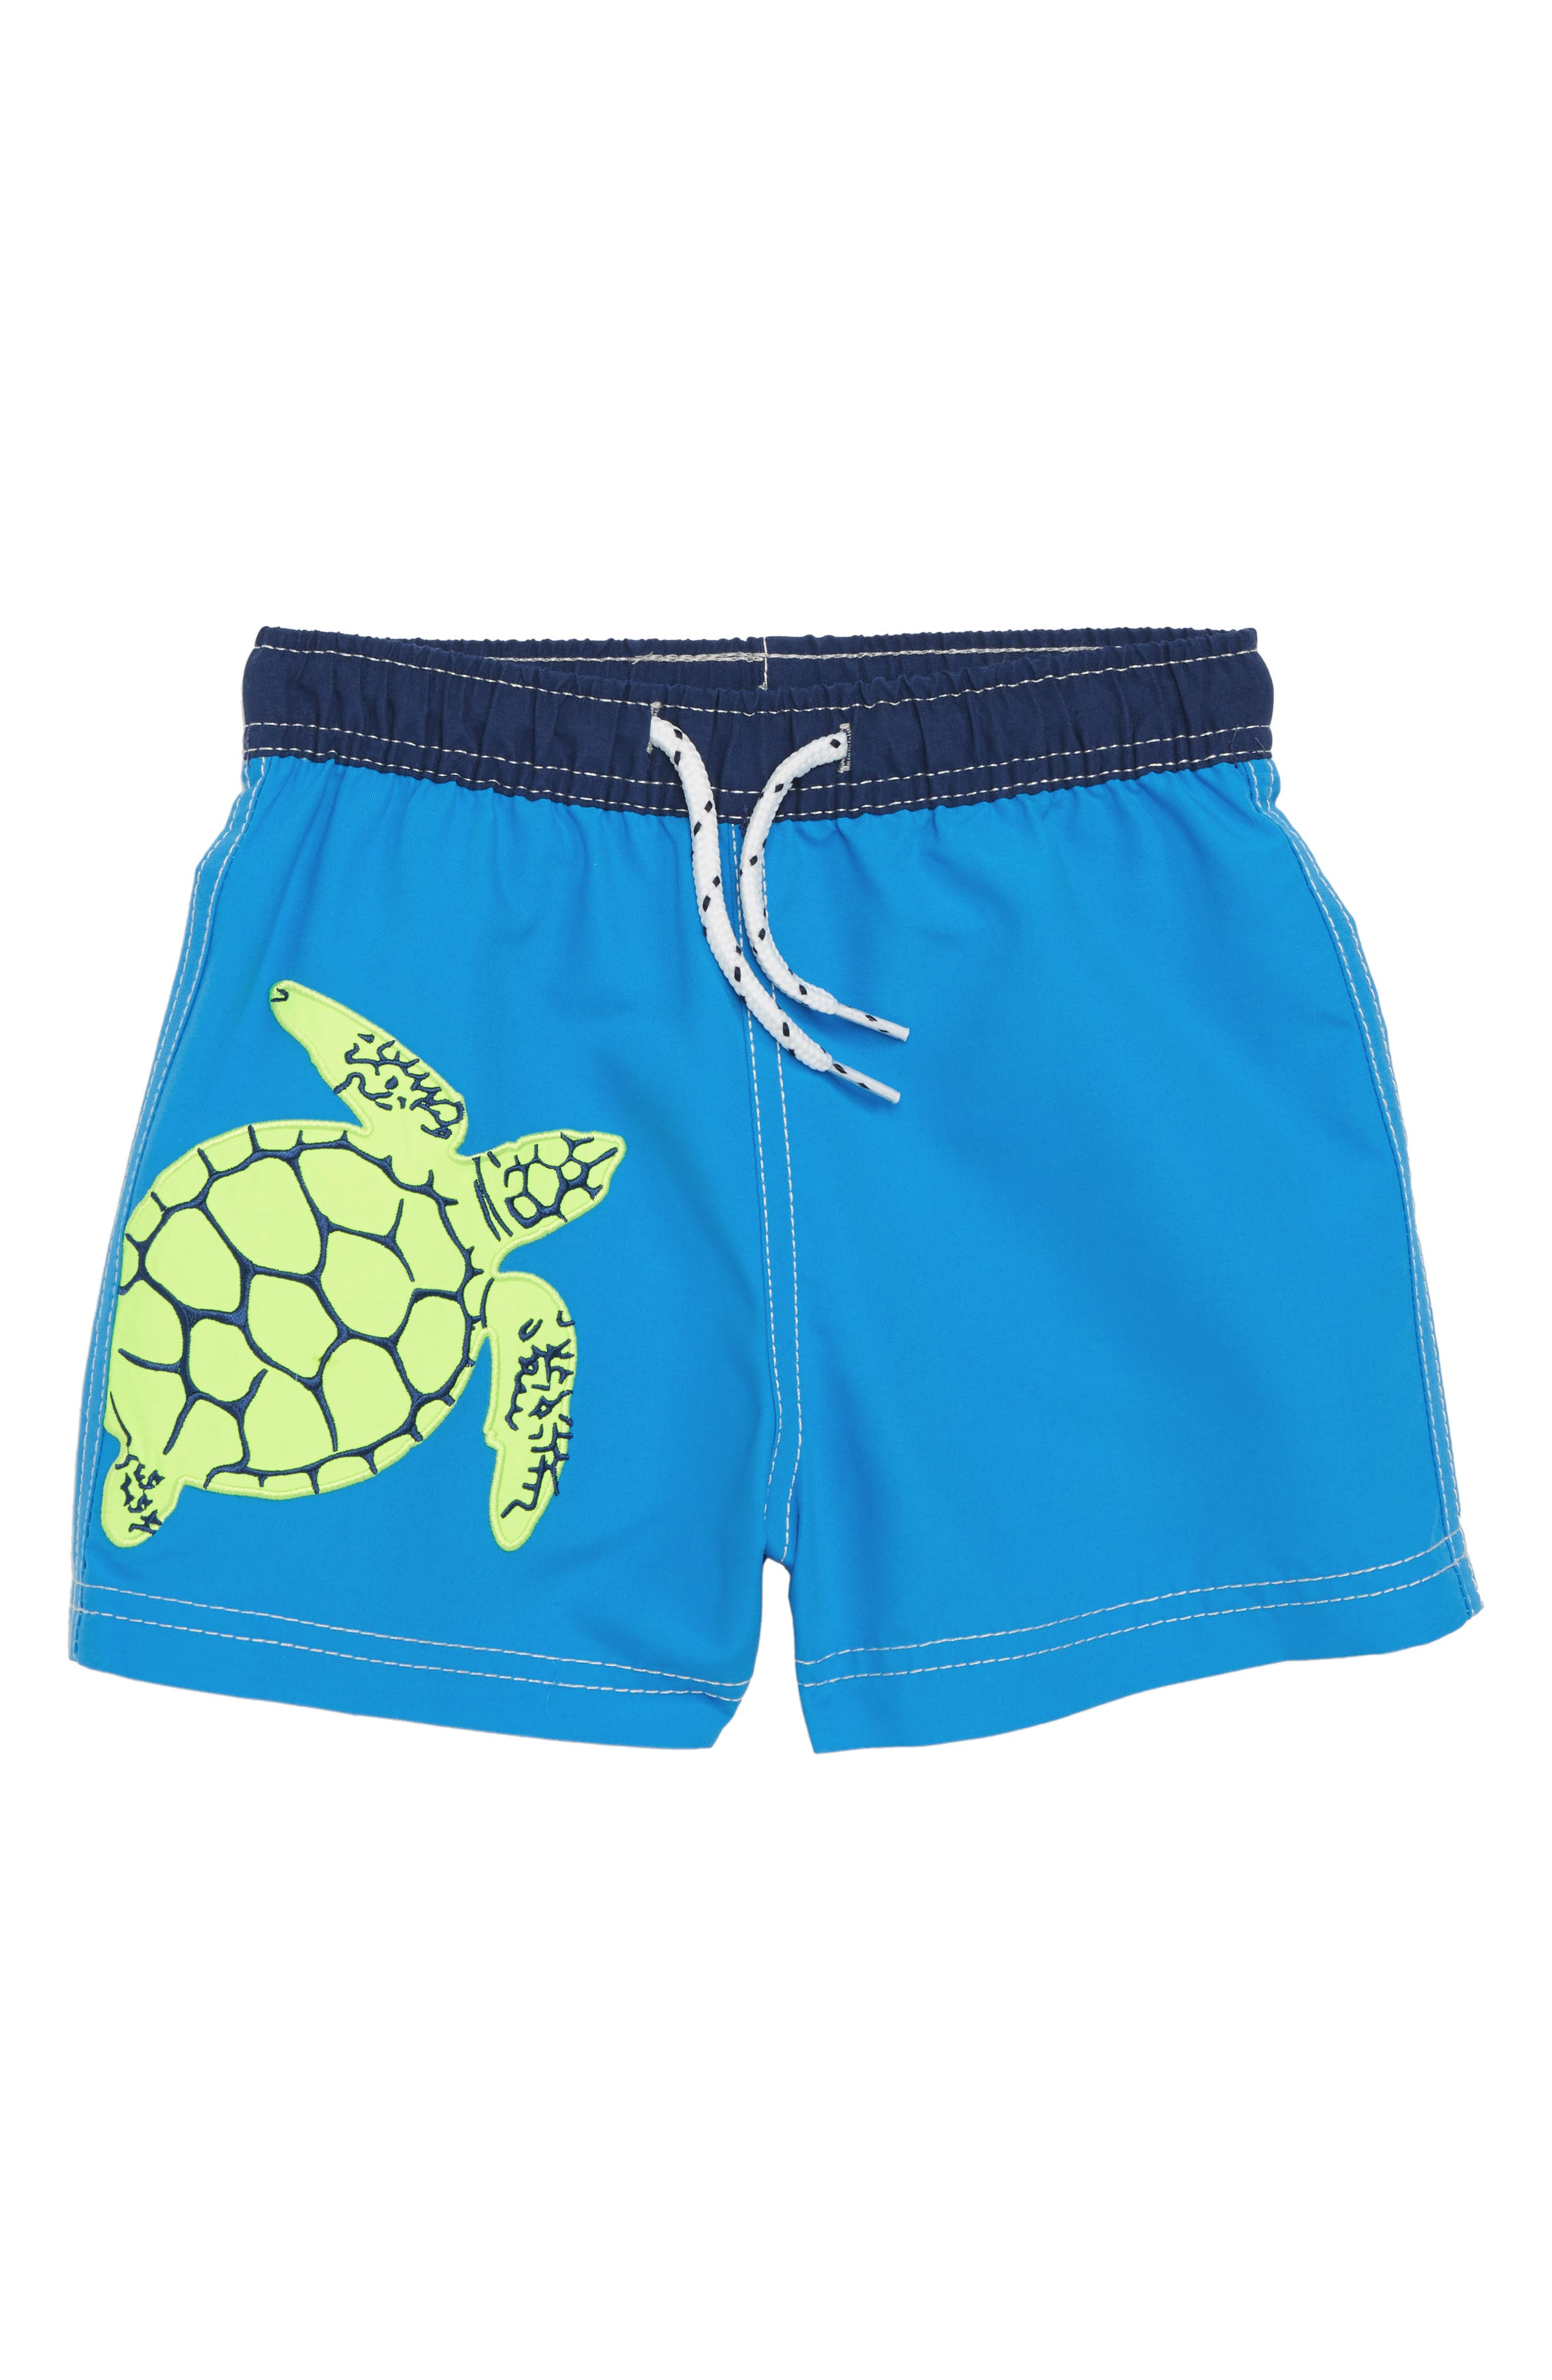 Embroidered Turtle Swim Trunks,                             Main thumbnail 1, color,                             Acid Yellow Turtle